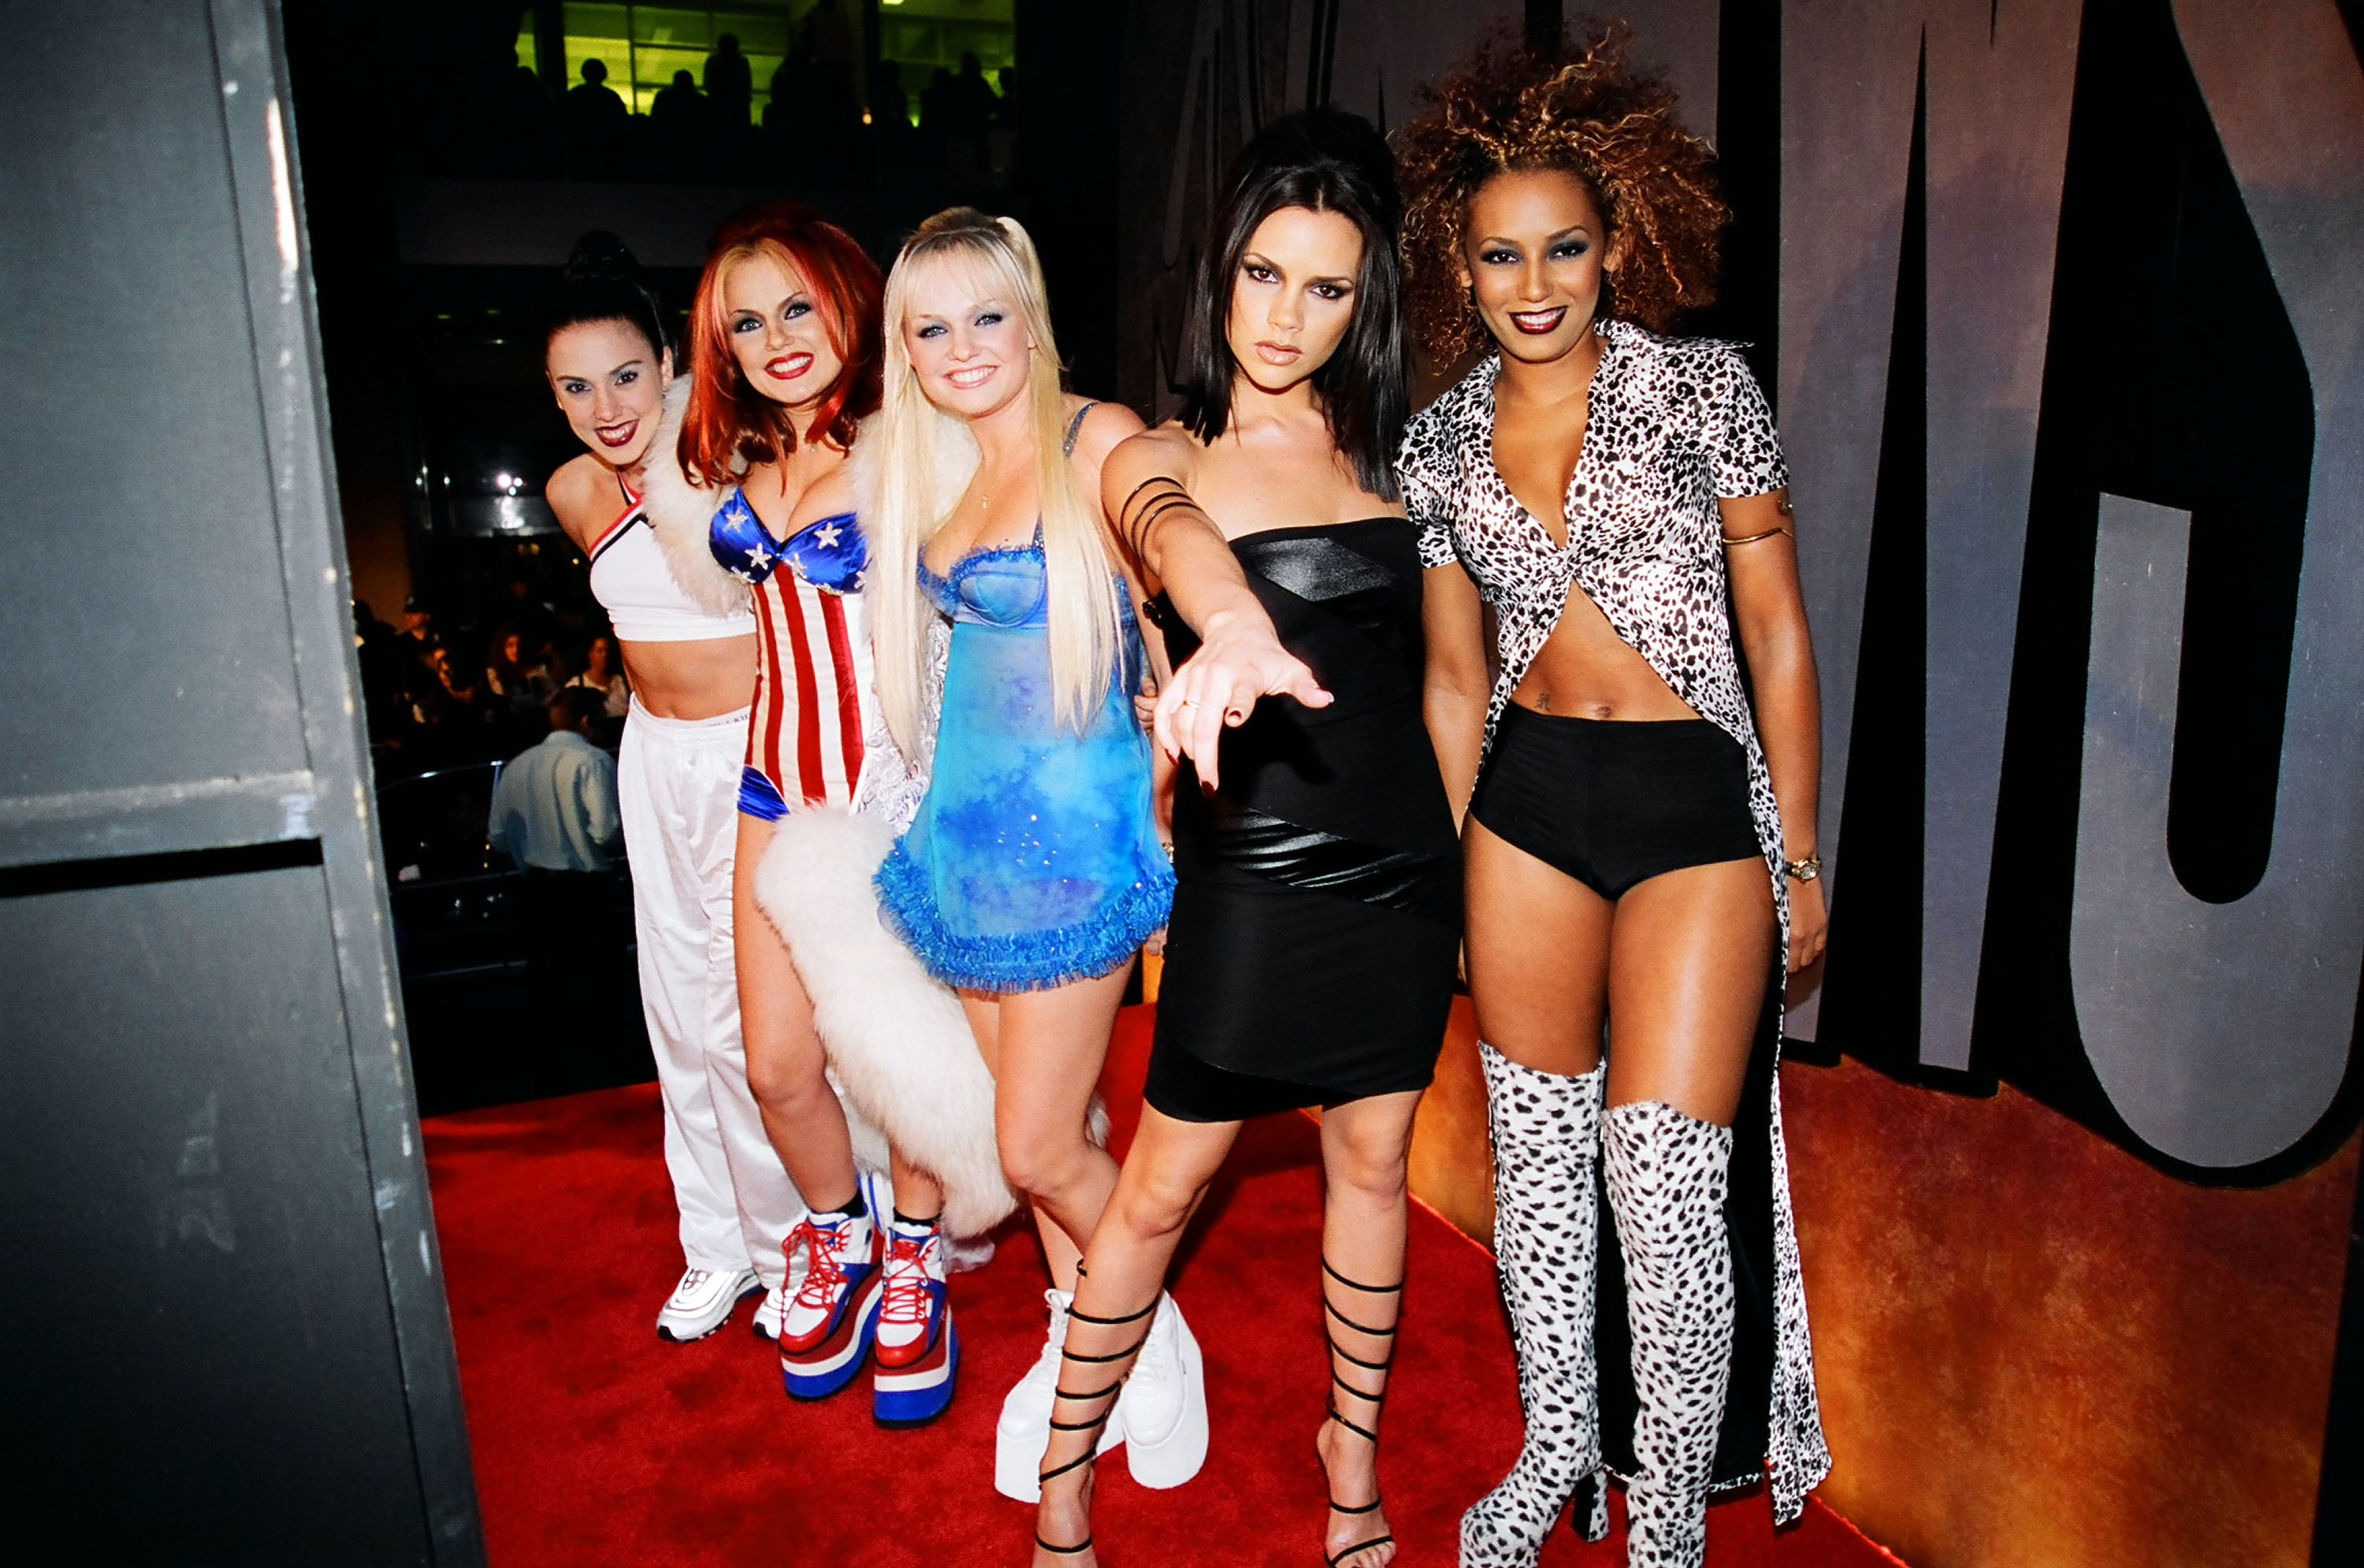 The Spice Girls never actually asked Victoria Beckham to do the reunion tour forecasting